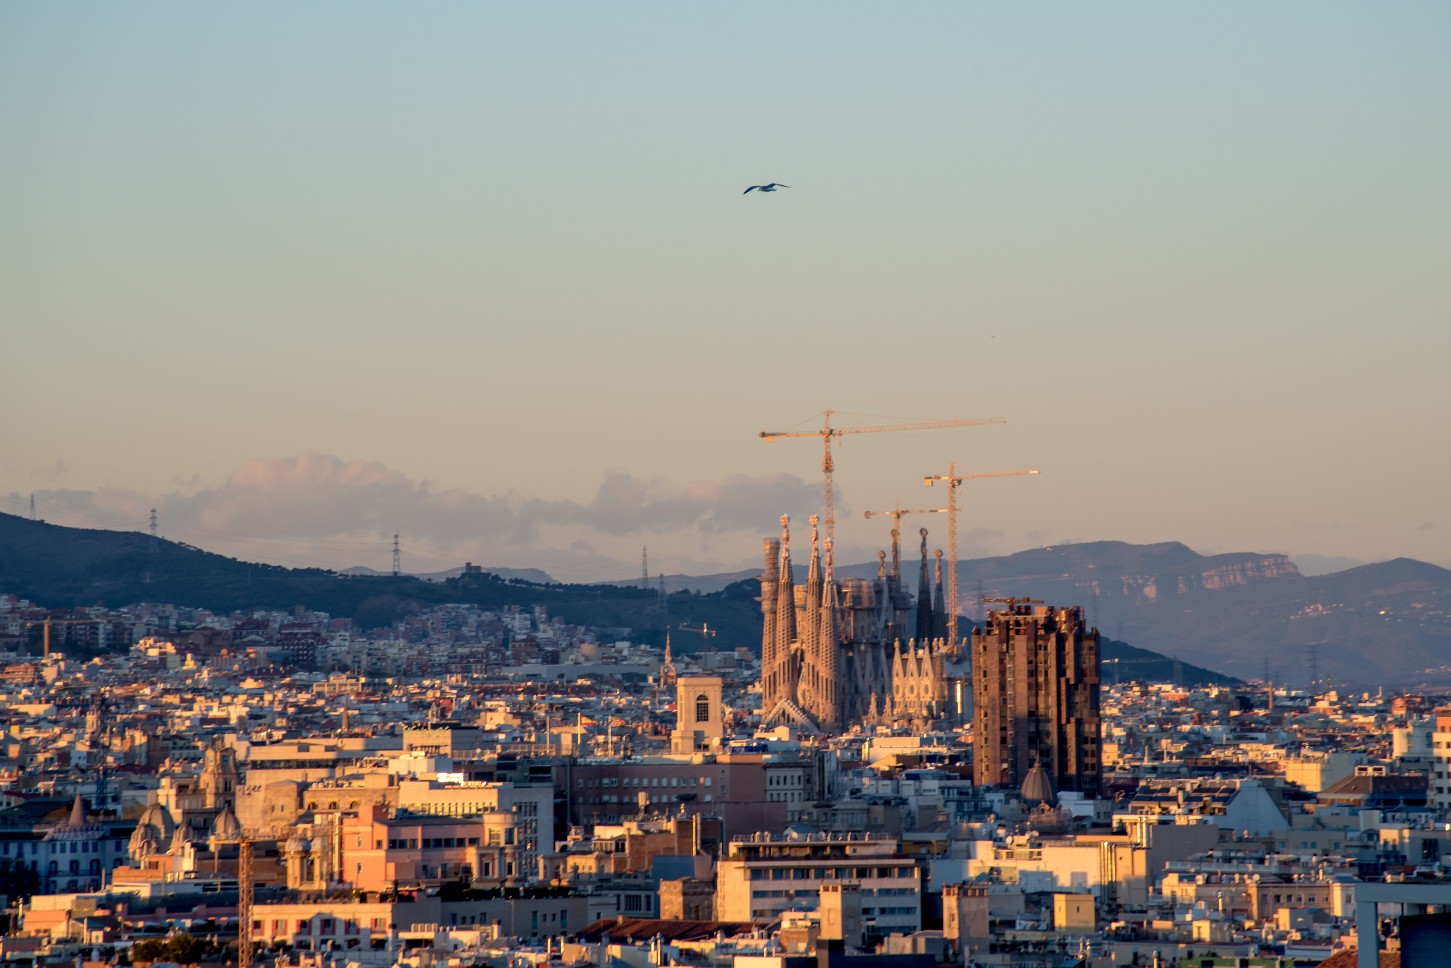 Views of La Sagrada Familia at sunset in Barcelona